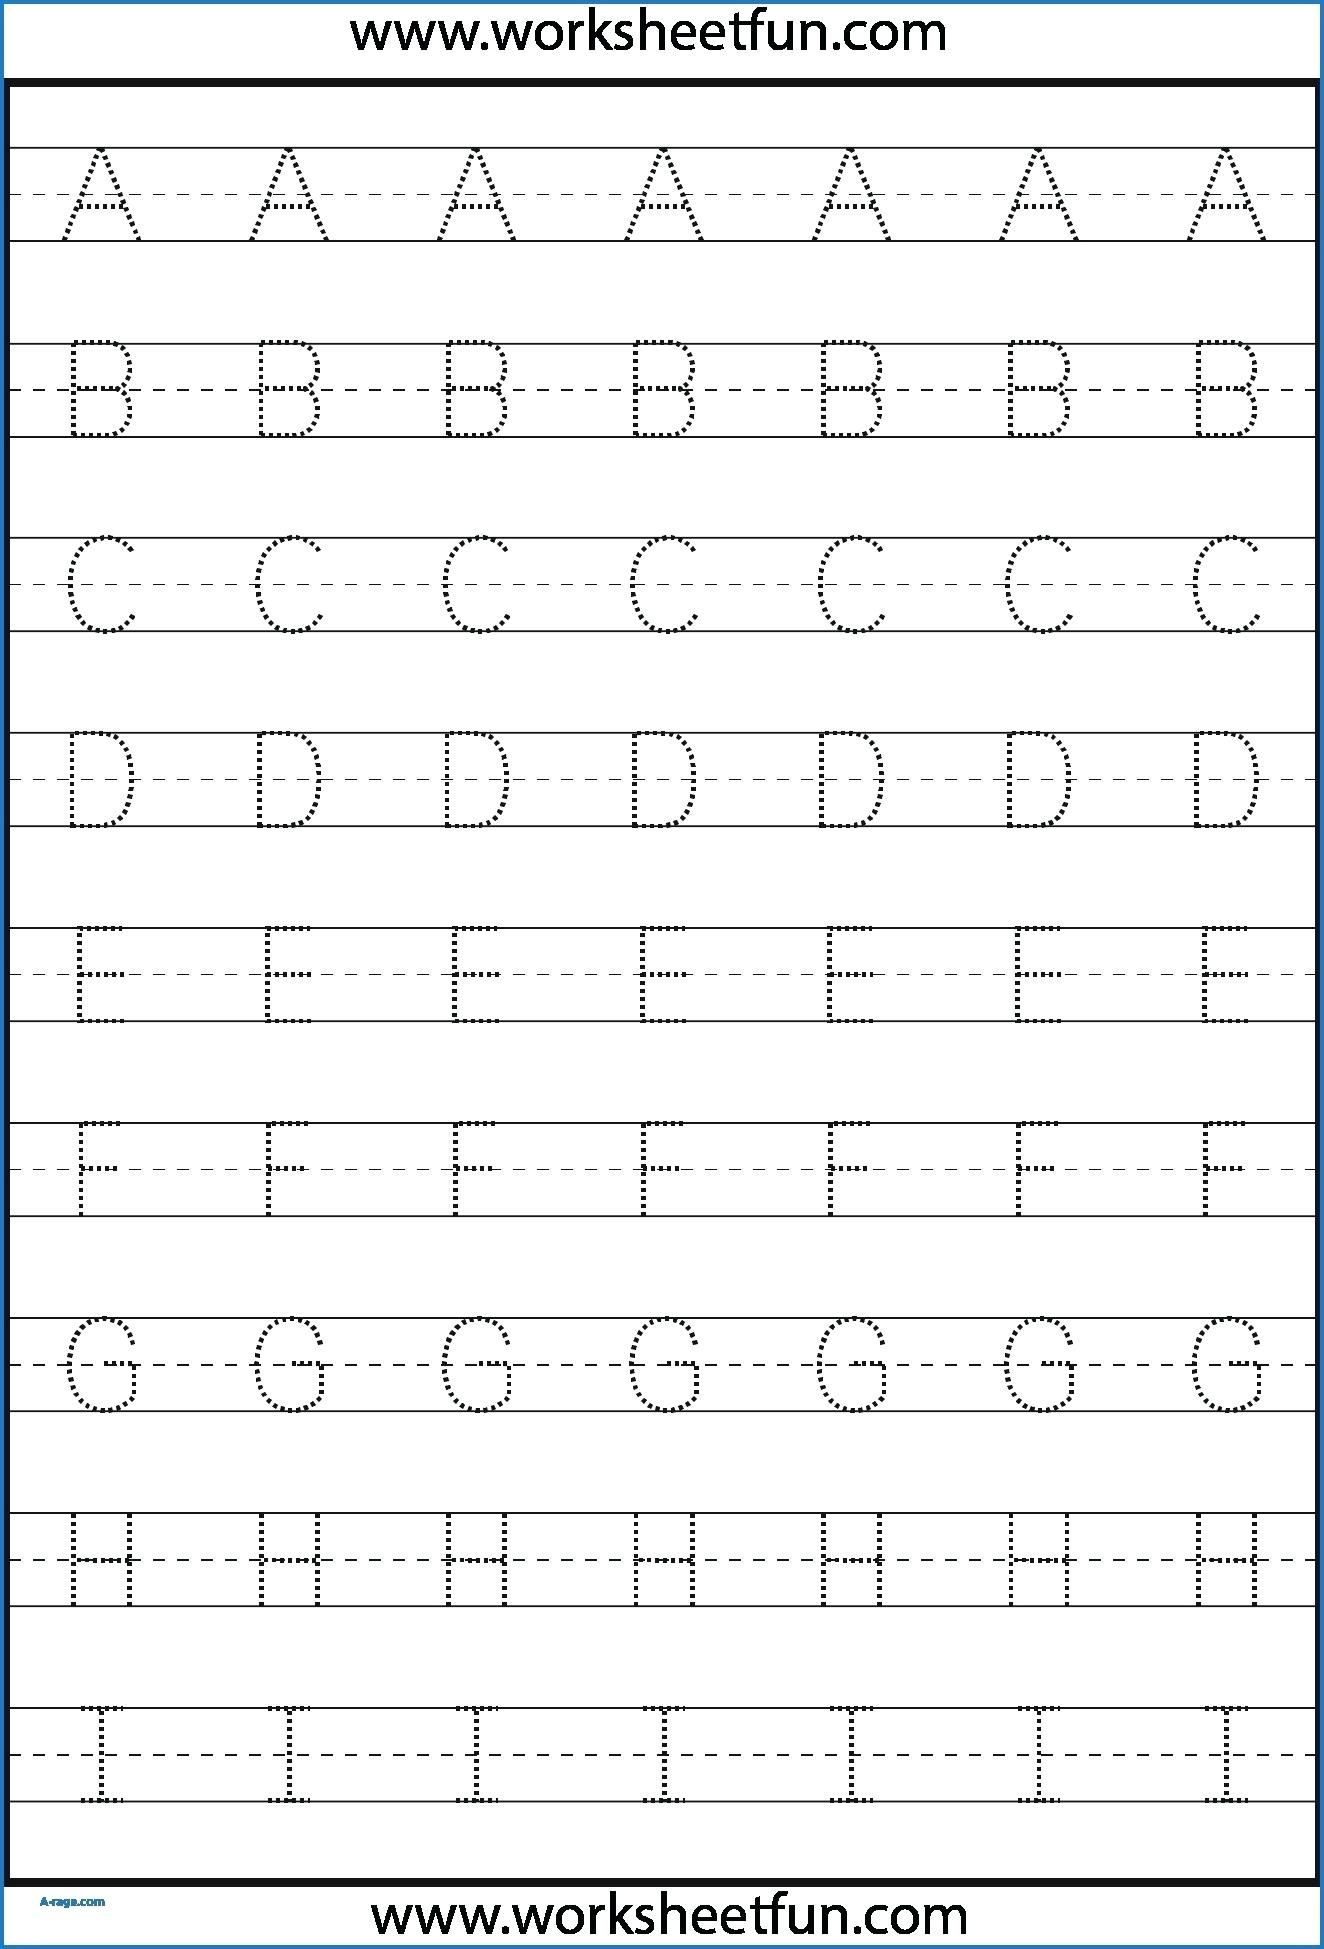 Kindergarten Letter Tracing Worksheets Pdf - Wallpaper Image pertaining to Letter S Tracing Worksheets Pdf